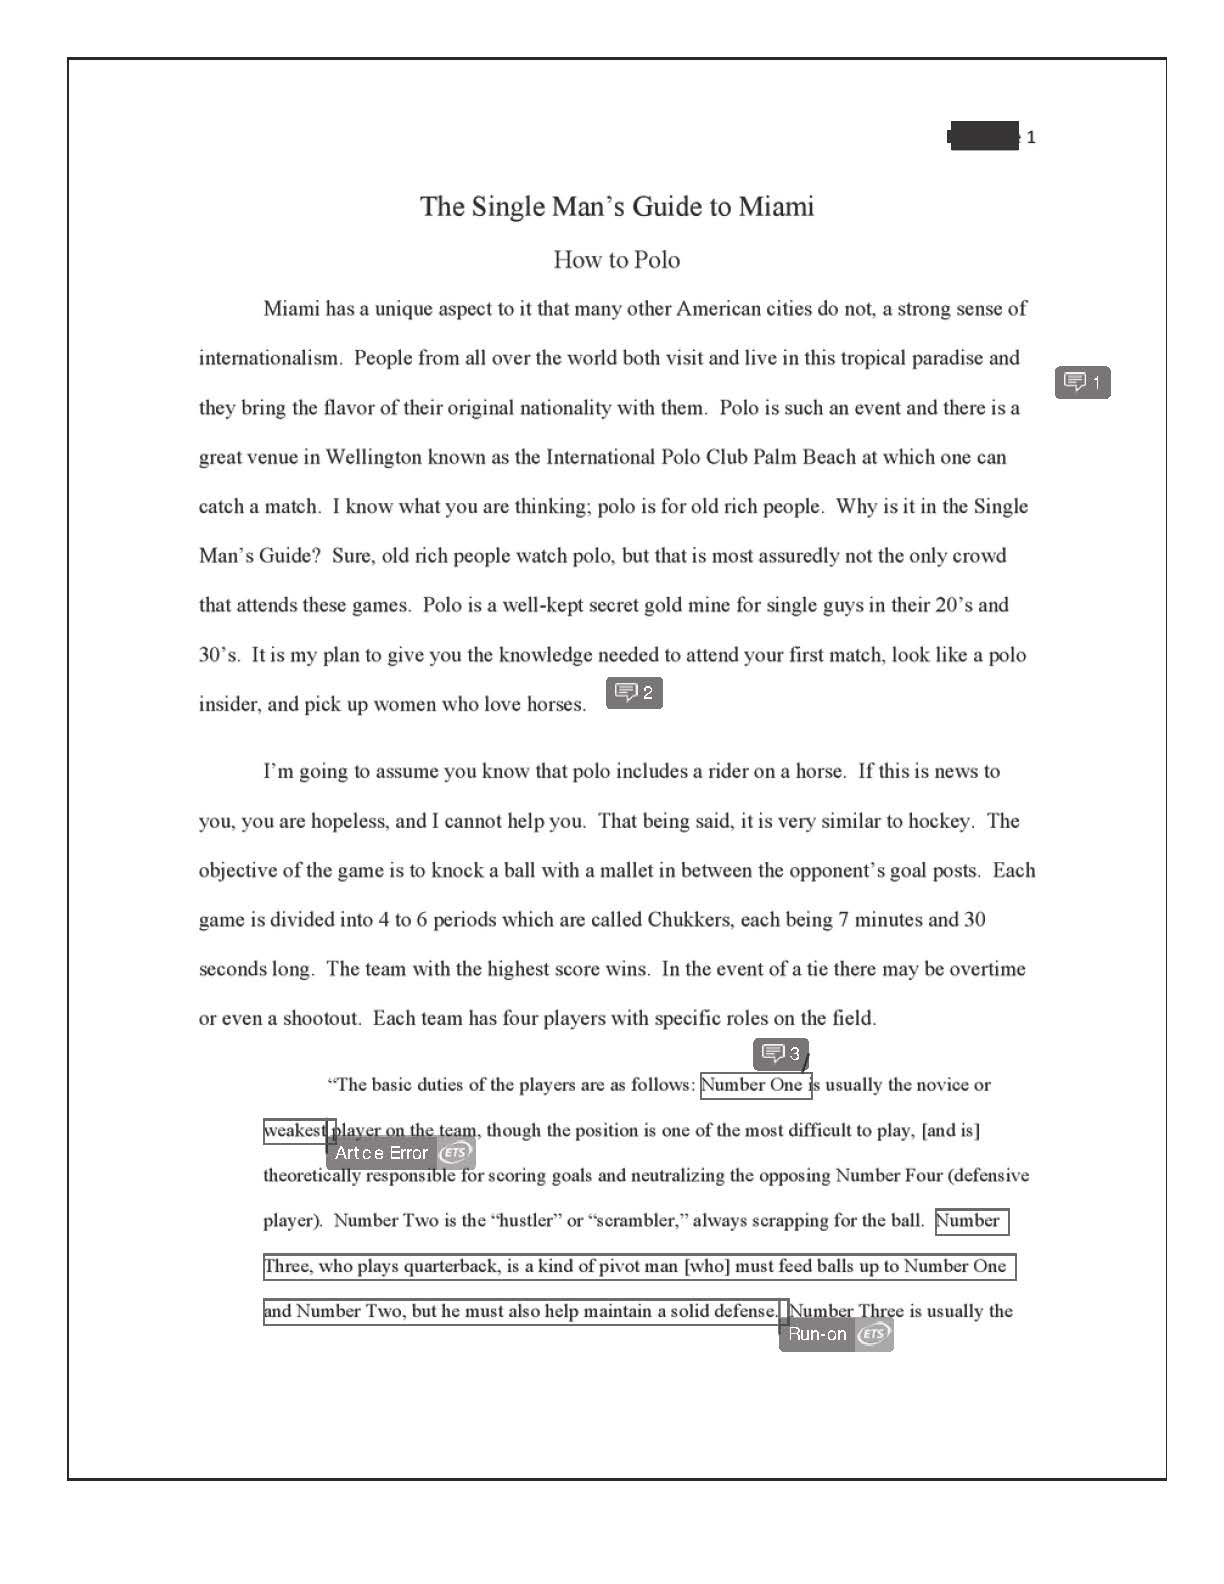 007 Informative Essay Kinds Of Writing Types Essays The Center In Hindi Final How To Polo Redacted P Pdf Task Slideshare Ppt Withs Wikipedia Dreaded Ideas Rubric 6th Grade Full